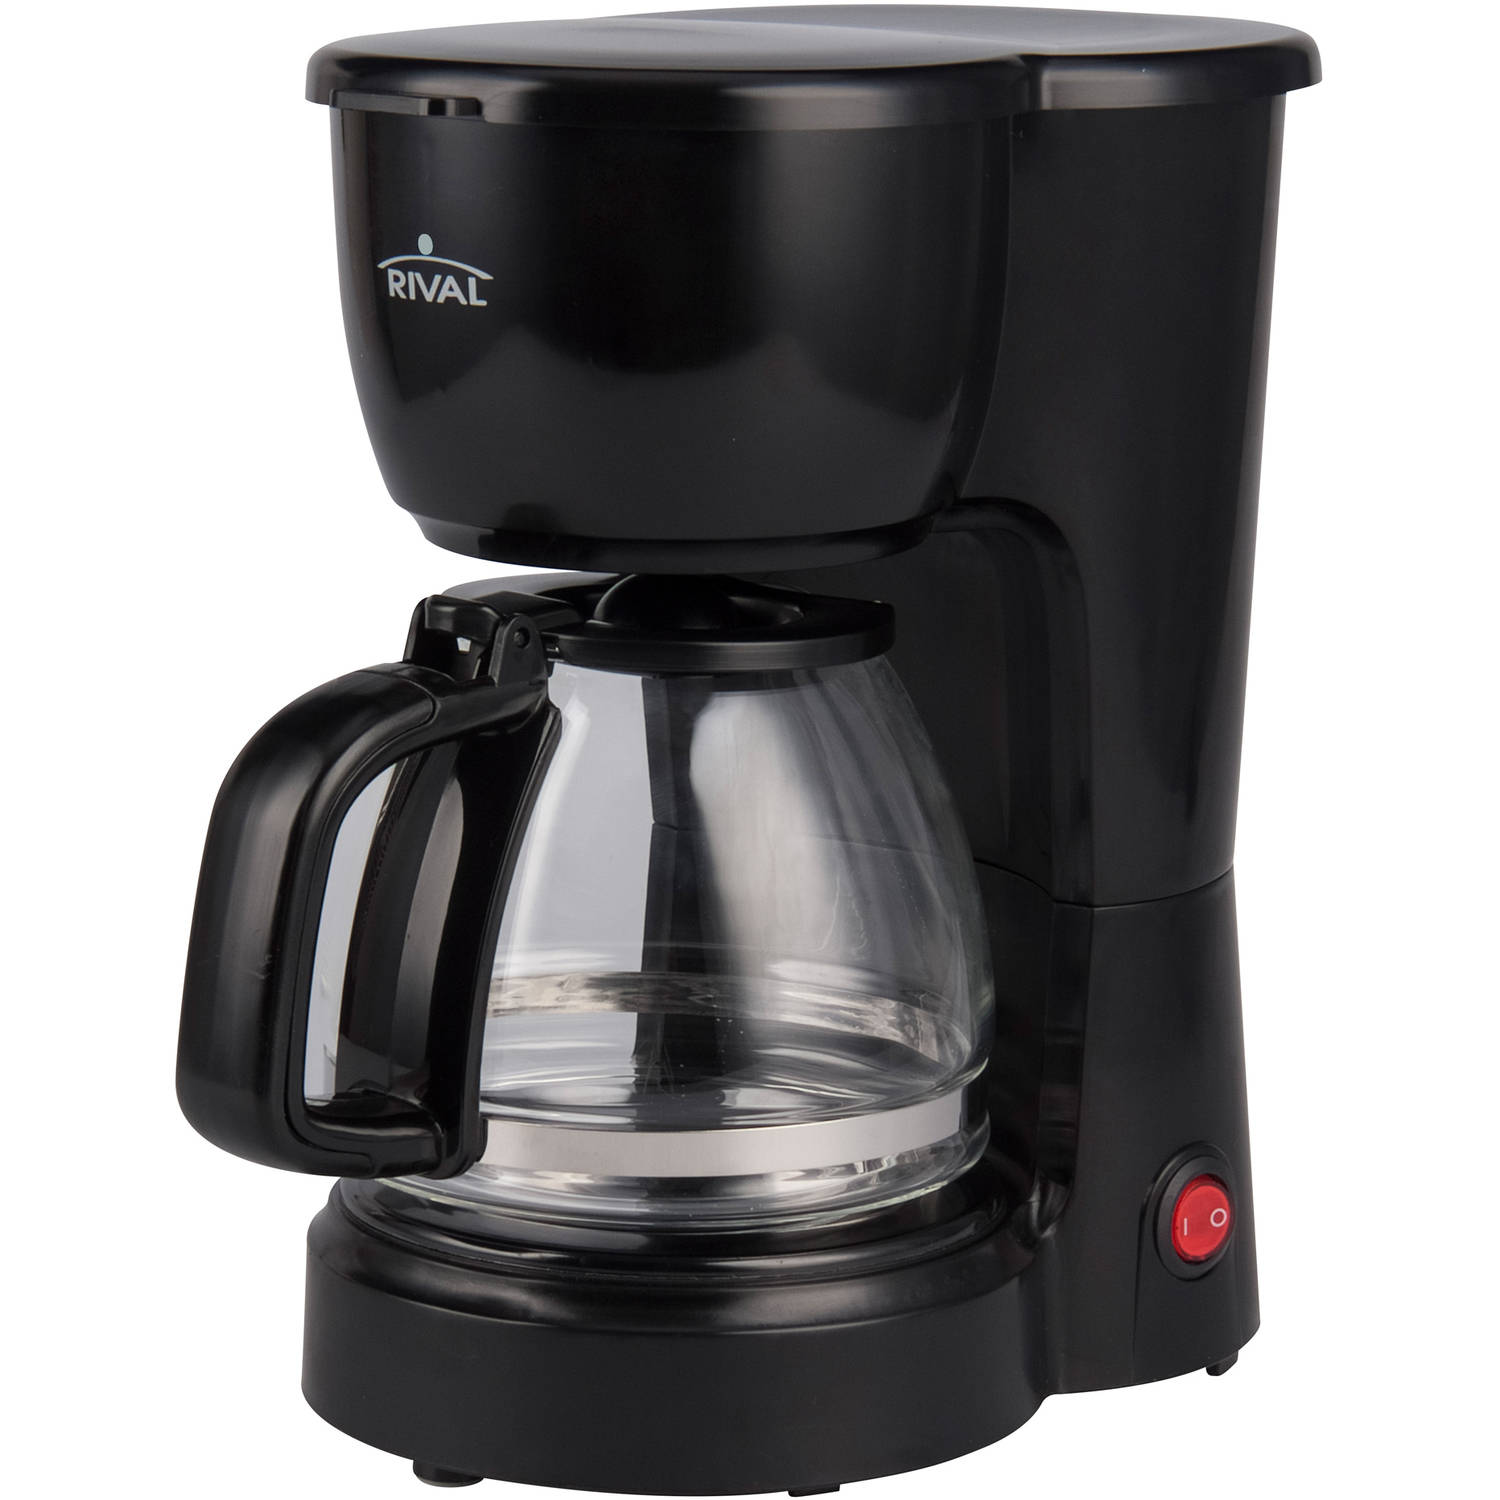 Rival 5-Cup Coffee Maker, Black